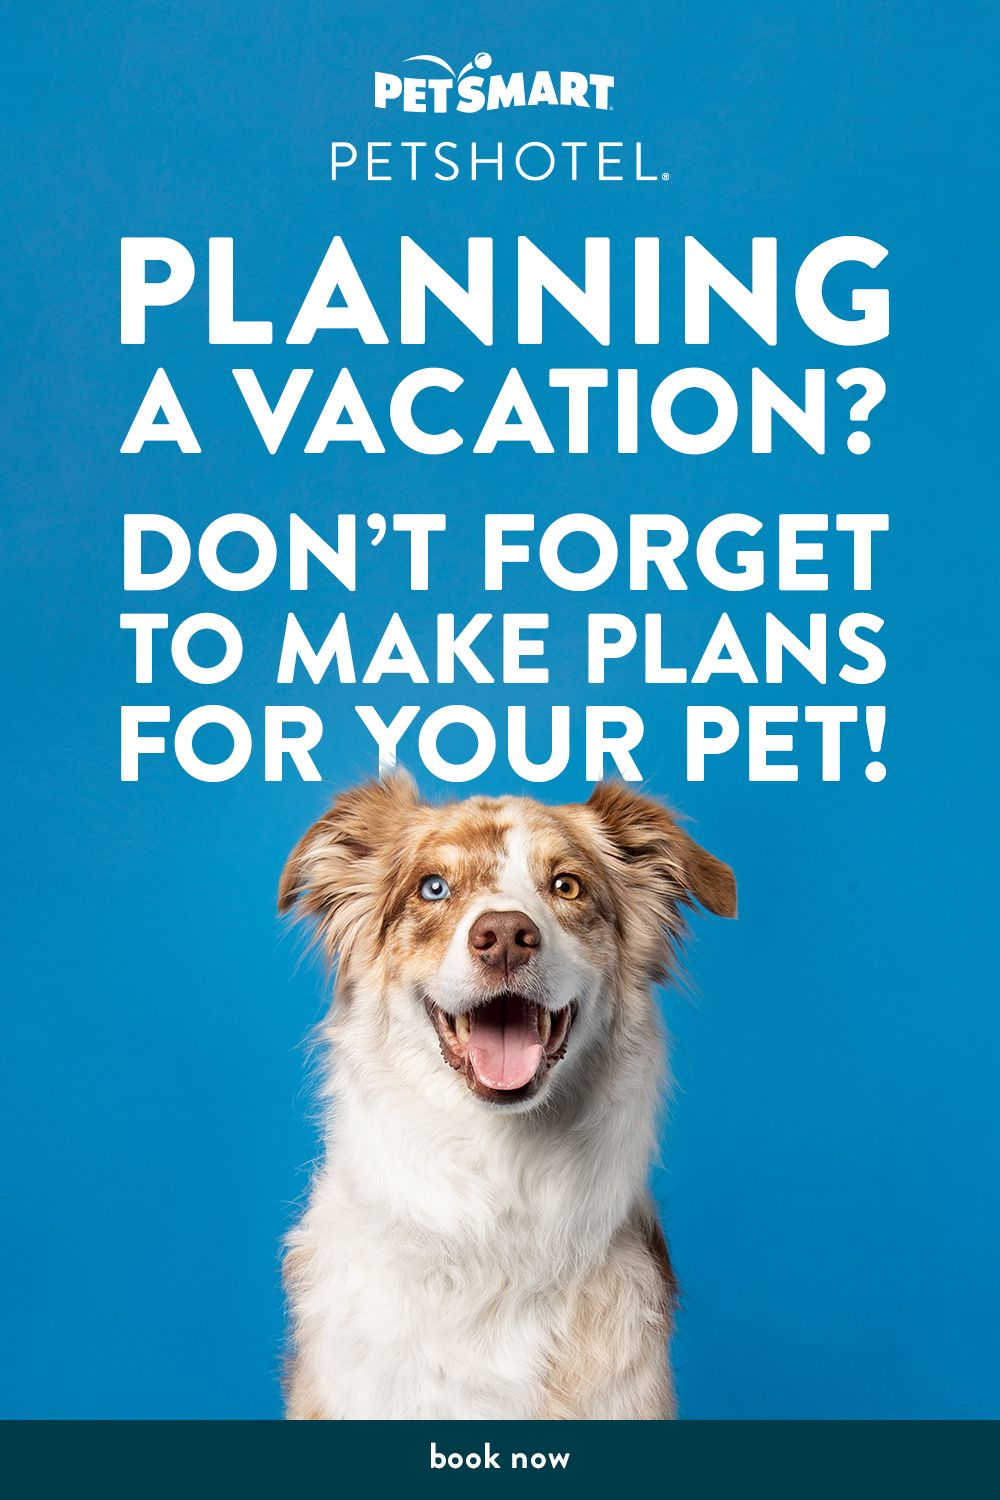 Full Service Hotel With 24 7 On Site Care An On Call Vet Dogs Can Enjoy Playtime Salon Services All Inclusive Packages Person Dog Solution Pets Baby Dogs